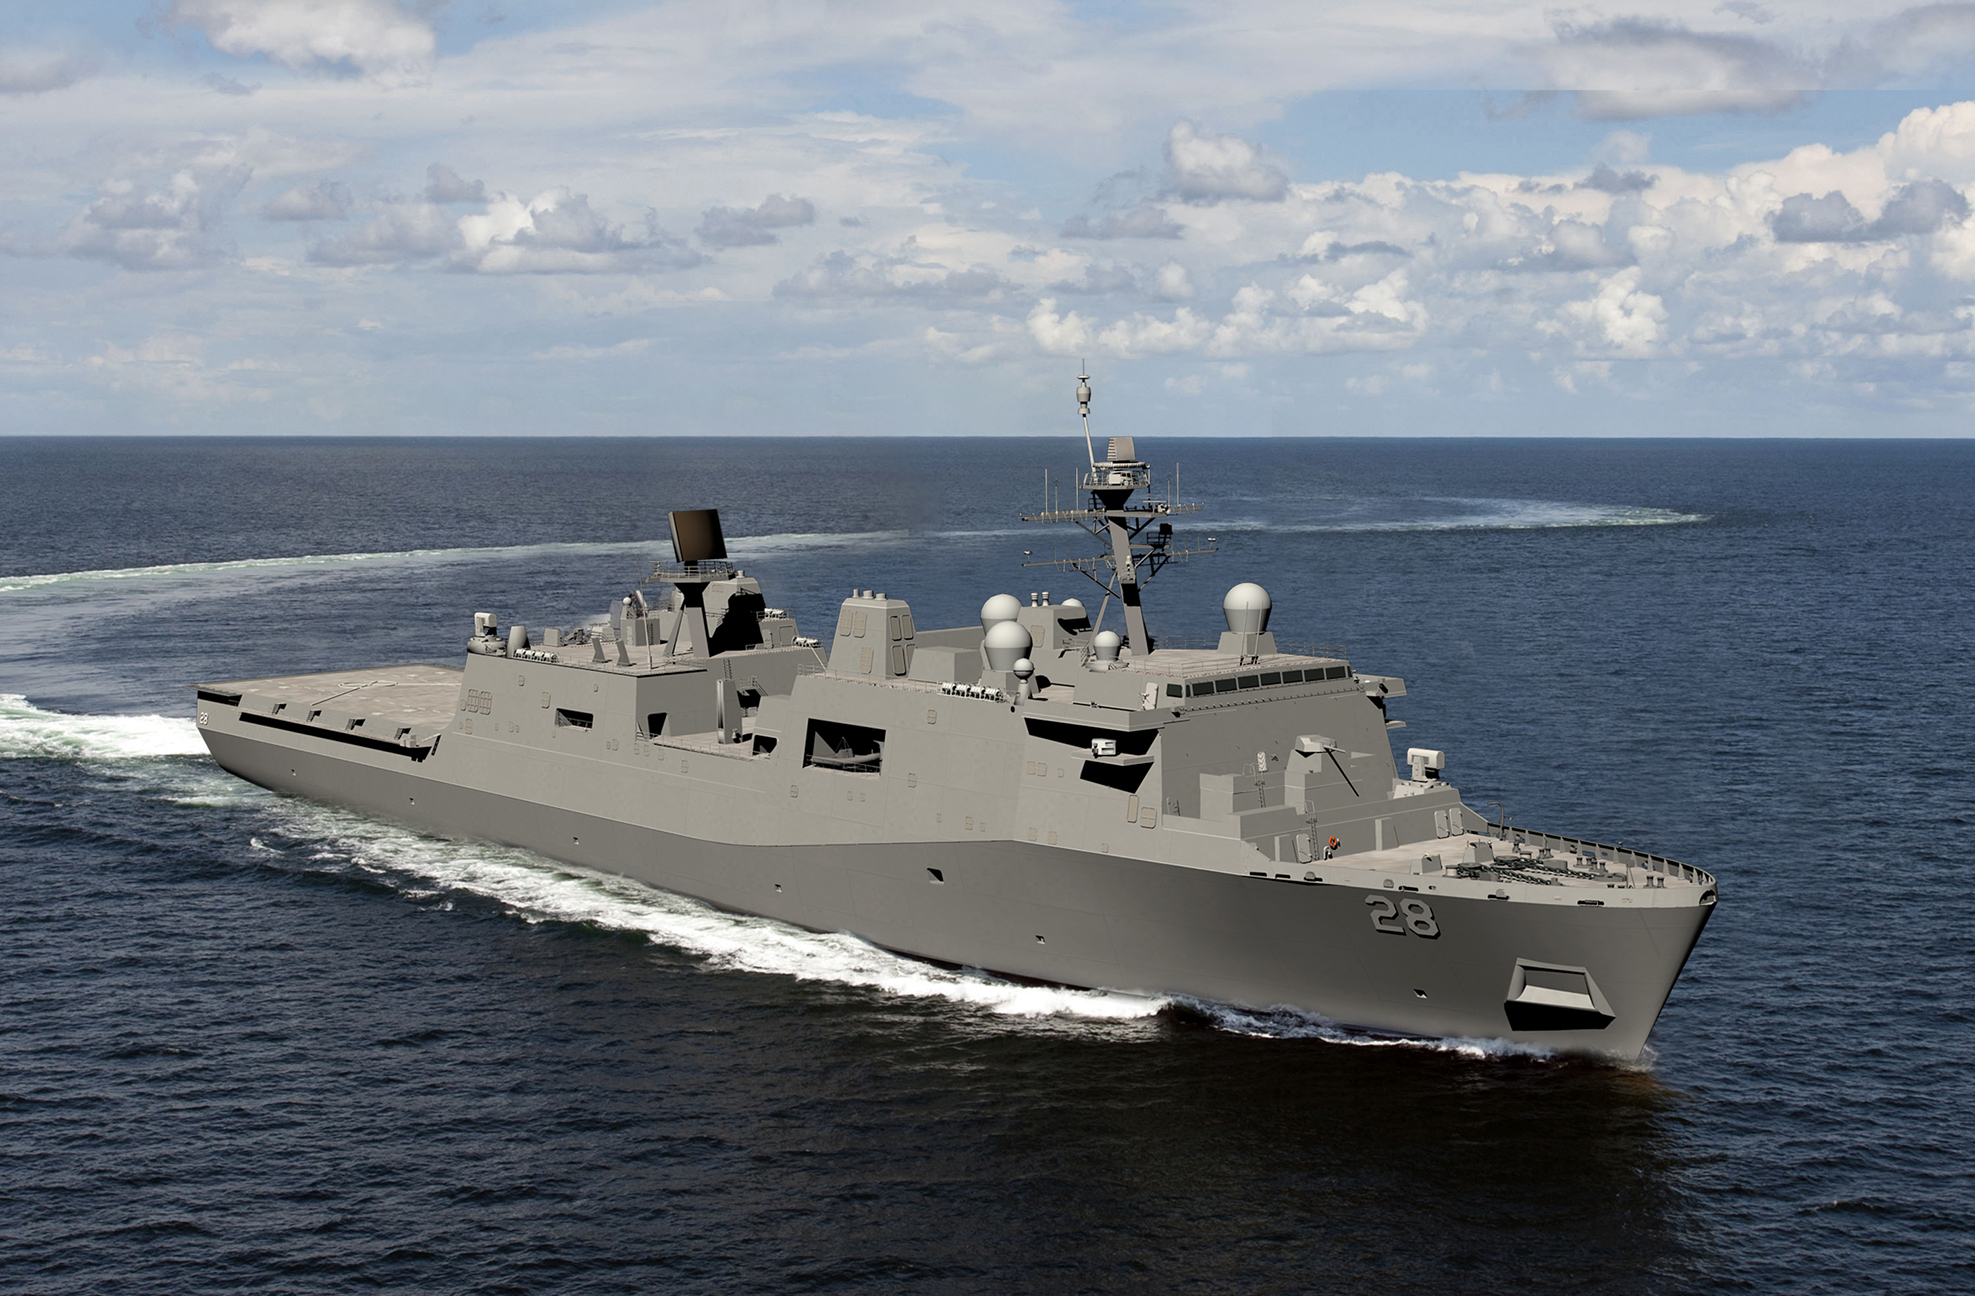 An artist's concept of the 12th San Antonio-class (LPD-17) amphibious warship Fort Lauderdale. HII Image